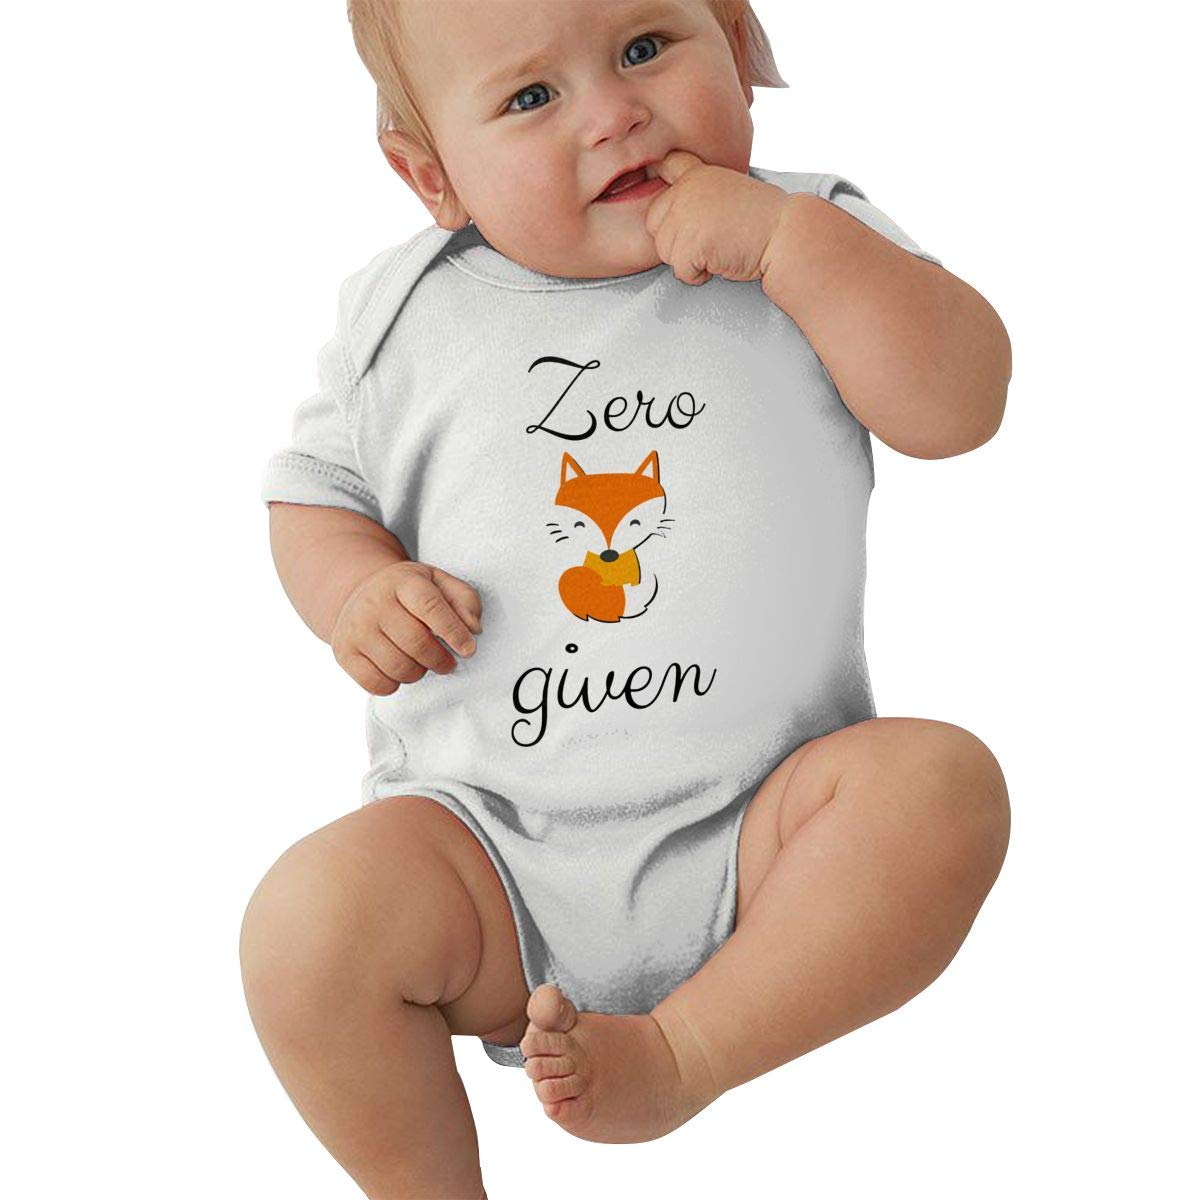 Soft Zero Fox Given Sleepwear Short Sleeve Cotton Bodysuit for Baby Boys and Girls